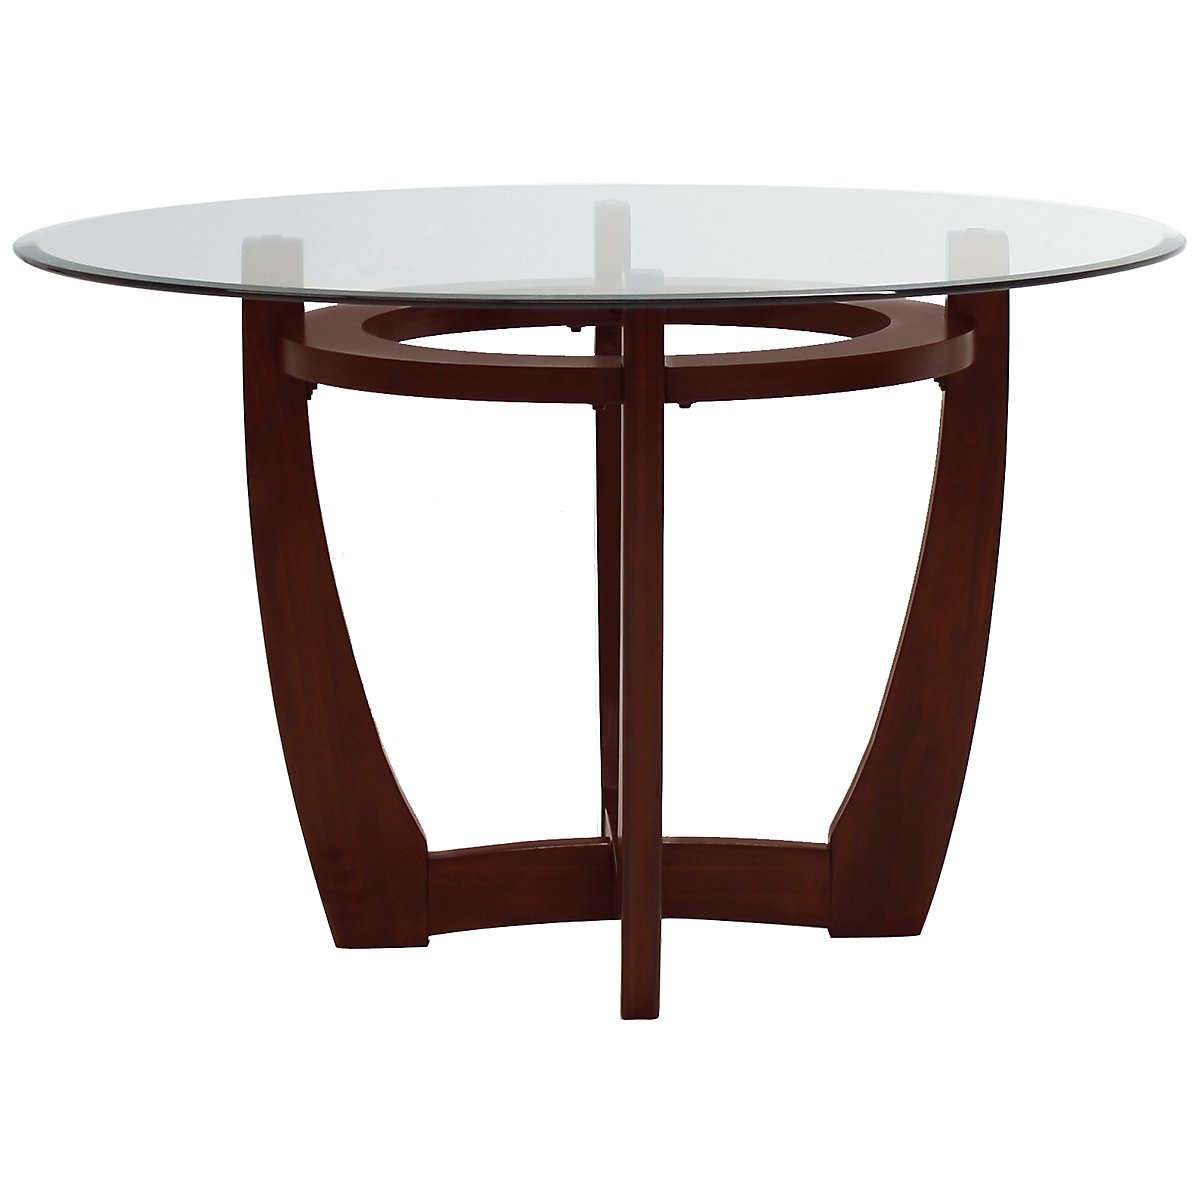 City Furniture Dining Room City Furniture Dining Room Furniture Dining Tables